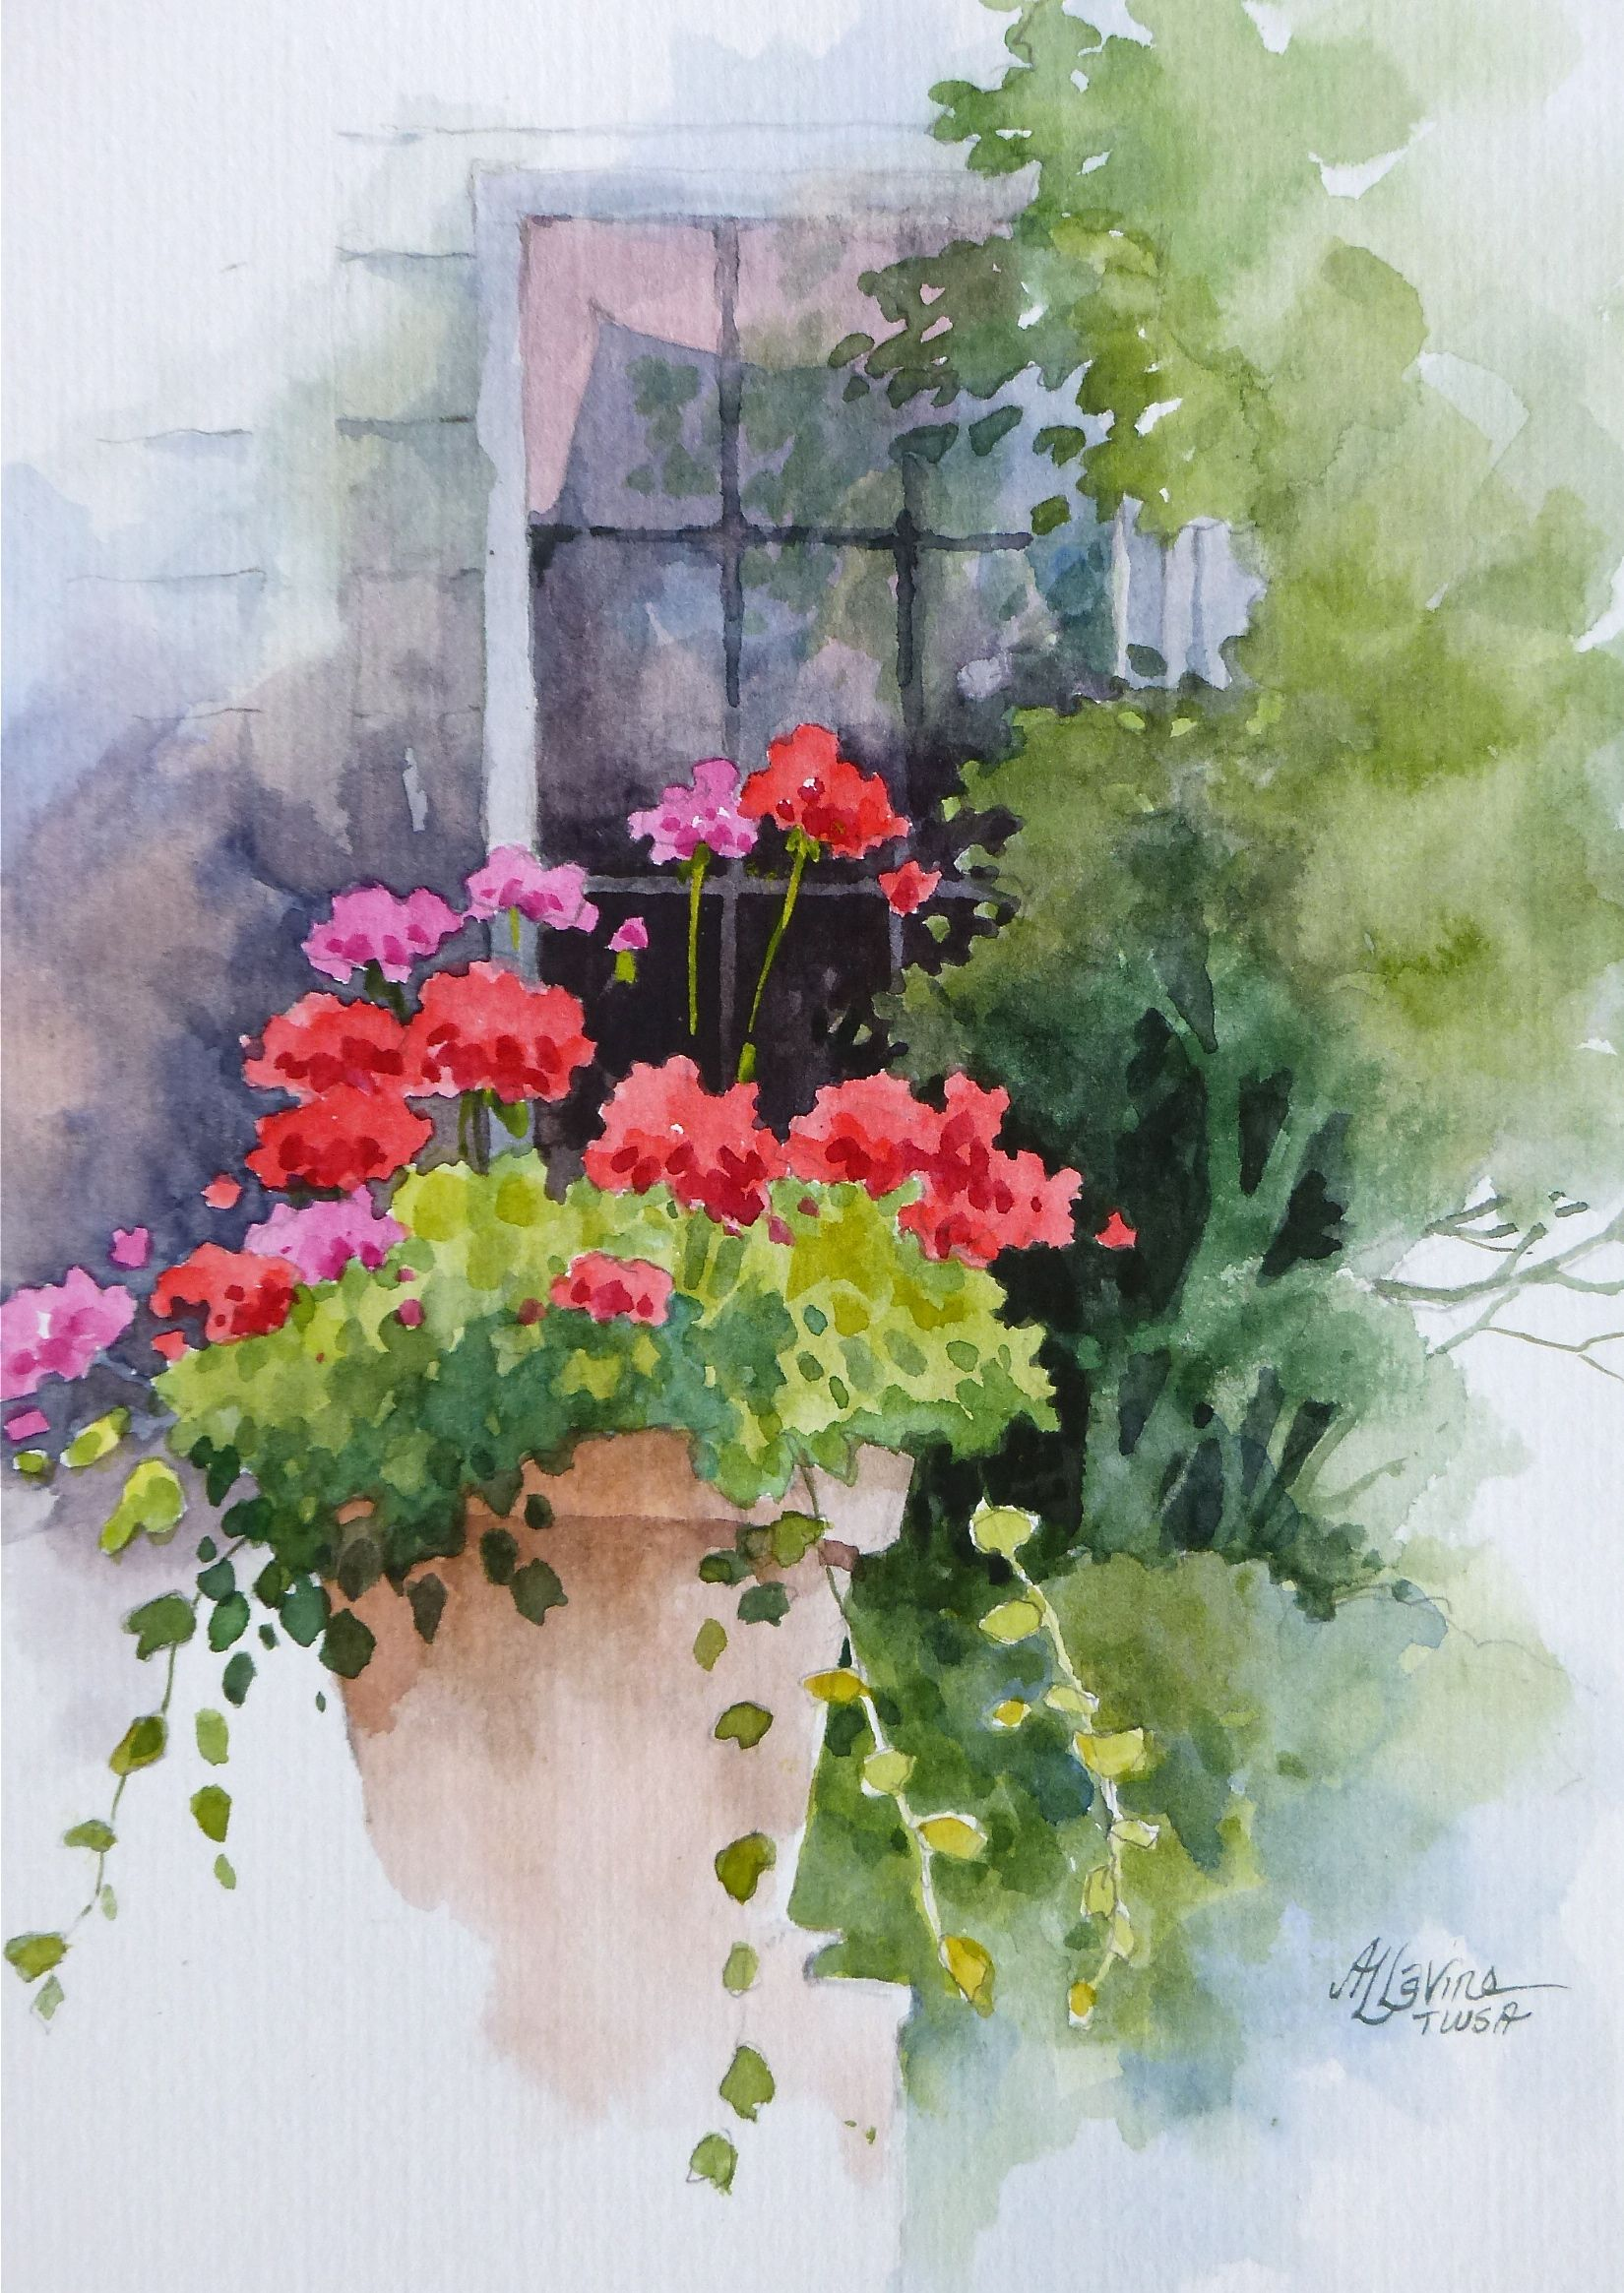 Epingle Par Claude Sur Aquarelles Aquarelle Facile Paysage